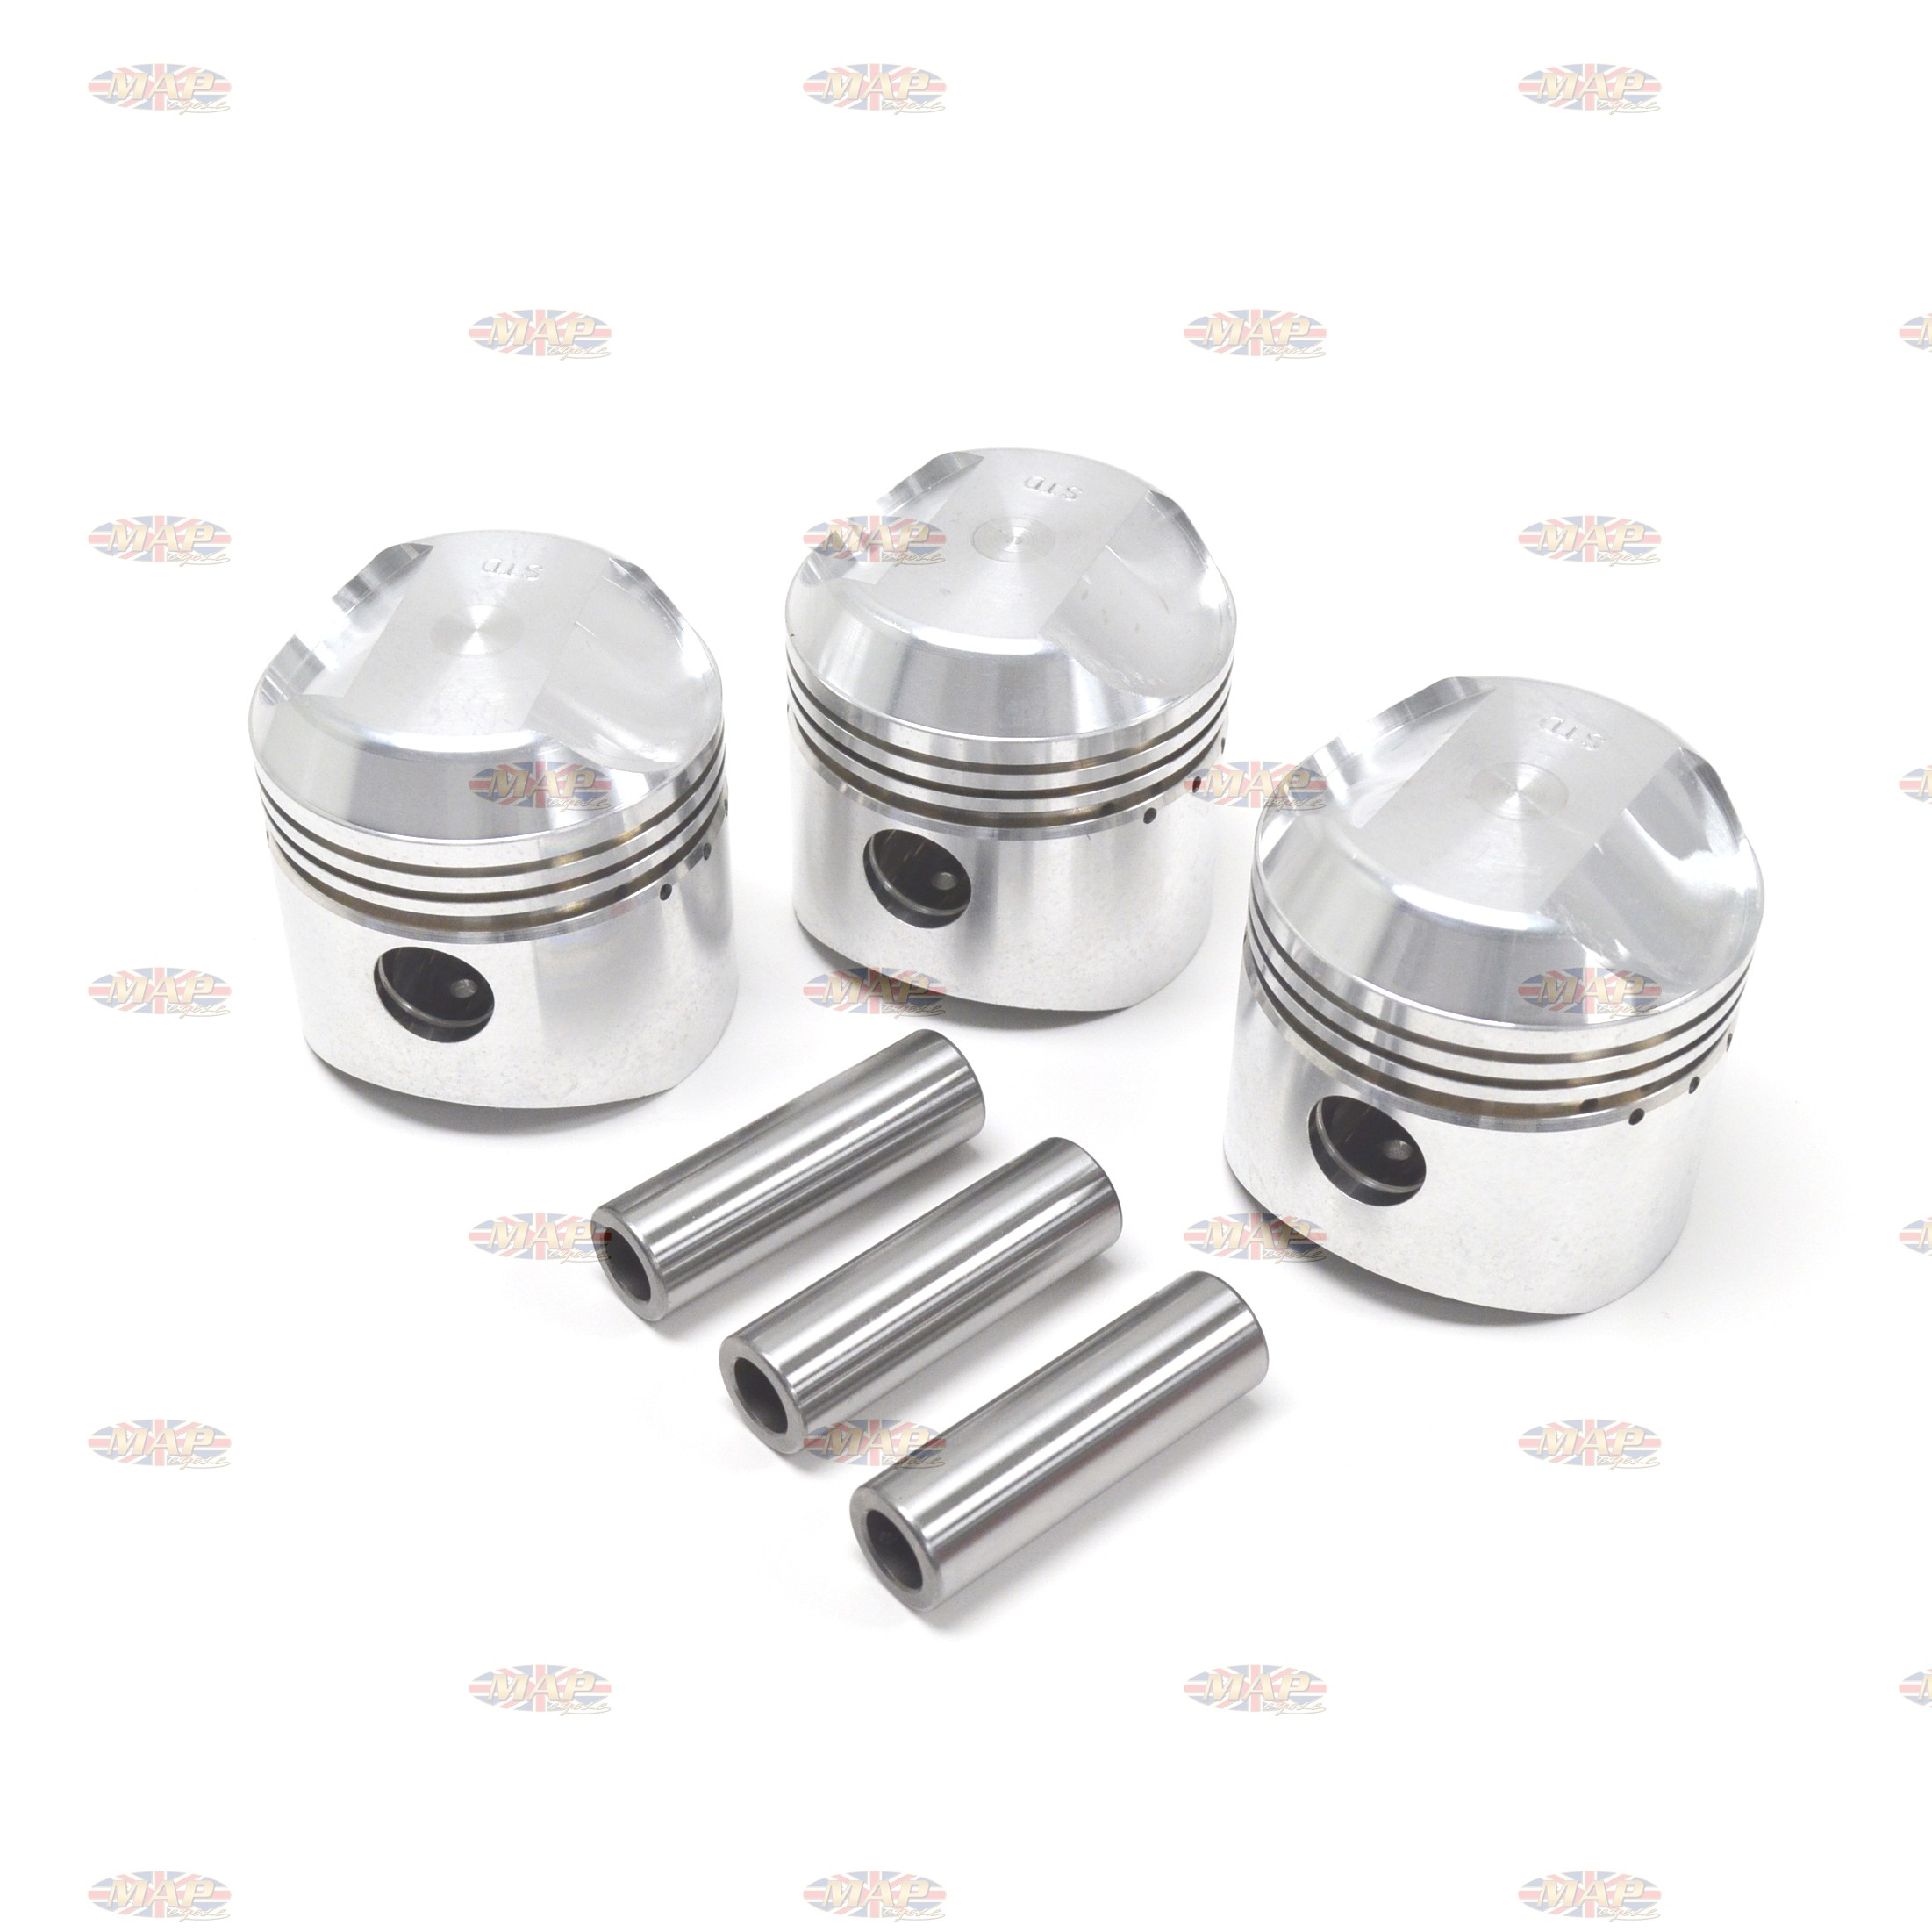 Triumph/BSA Triples Piston Set 19916/E-GRP